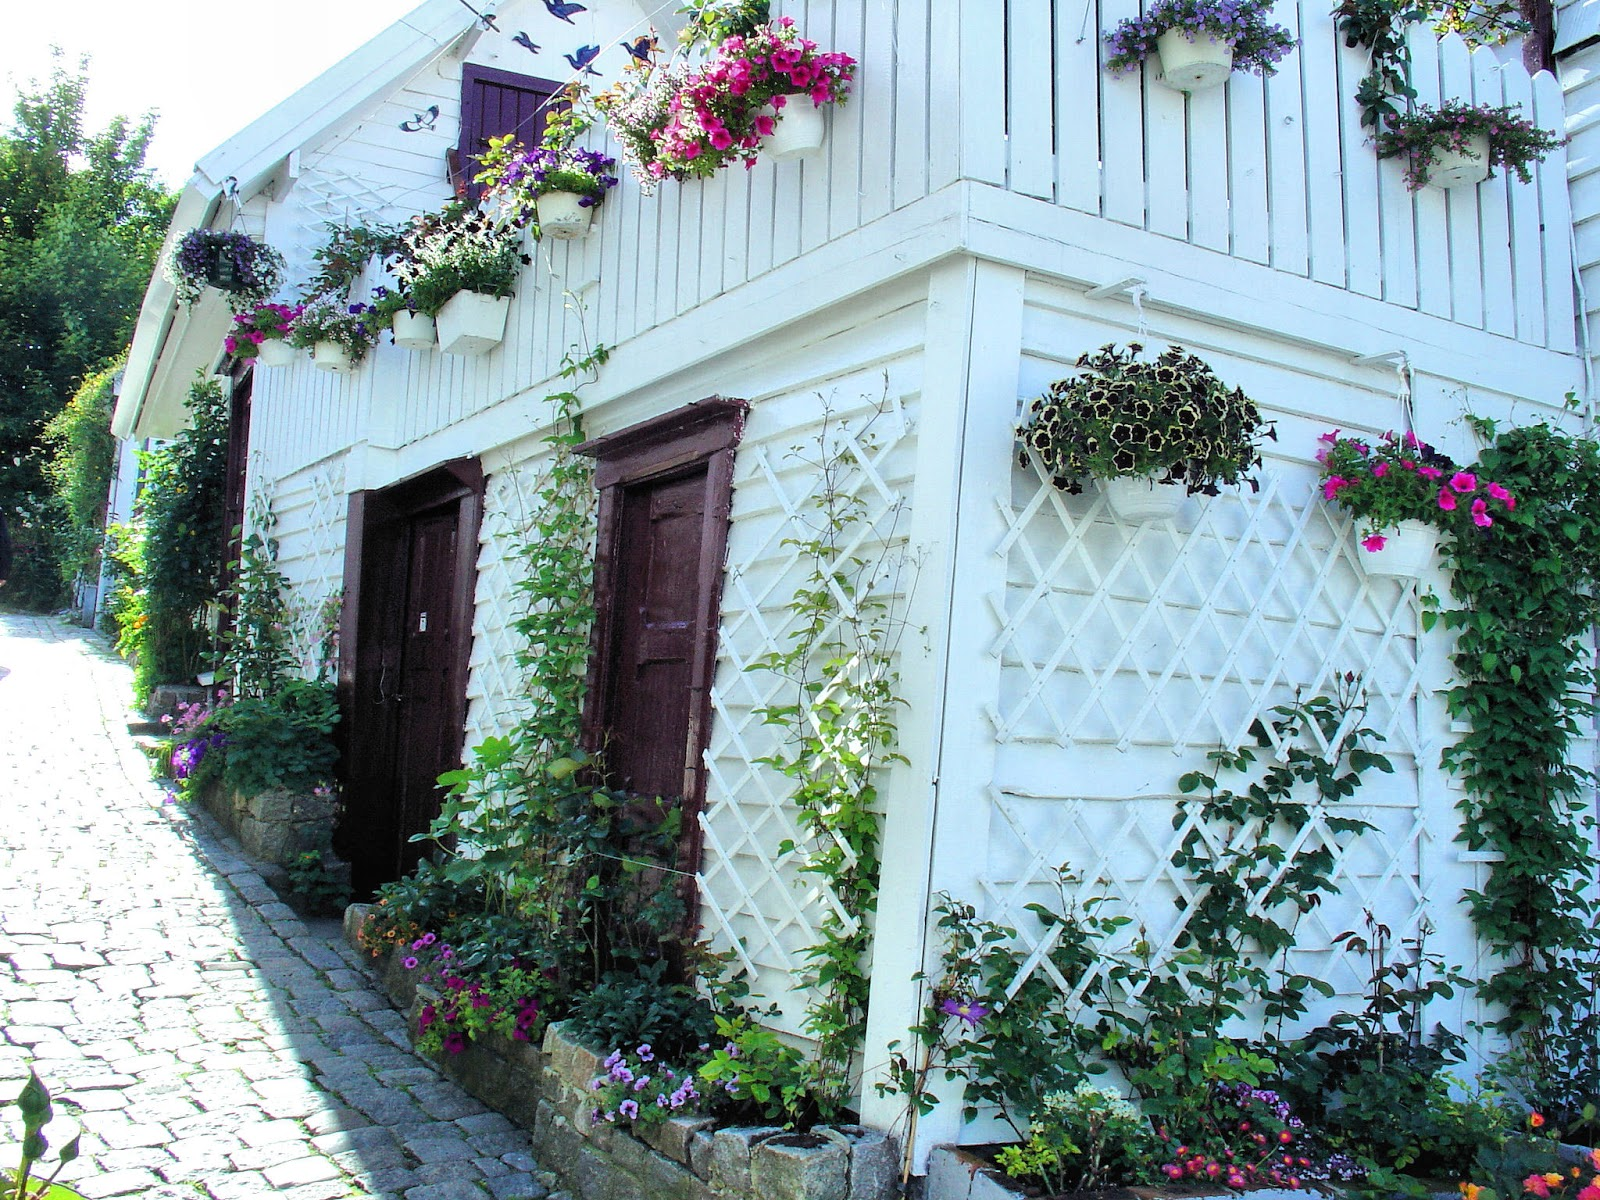 An enchanted cottage in Old Stavanger.